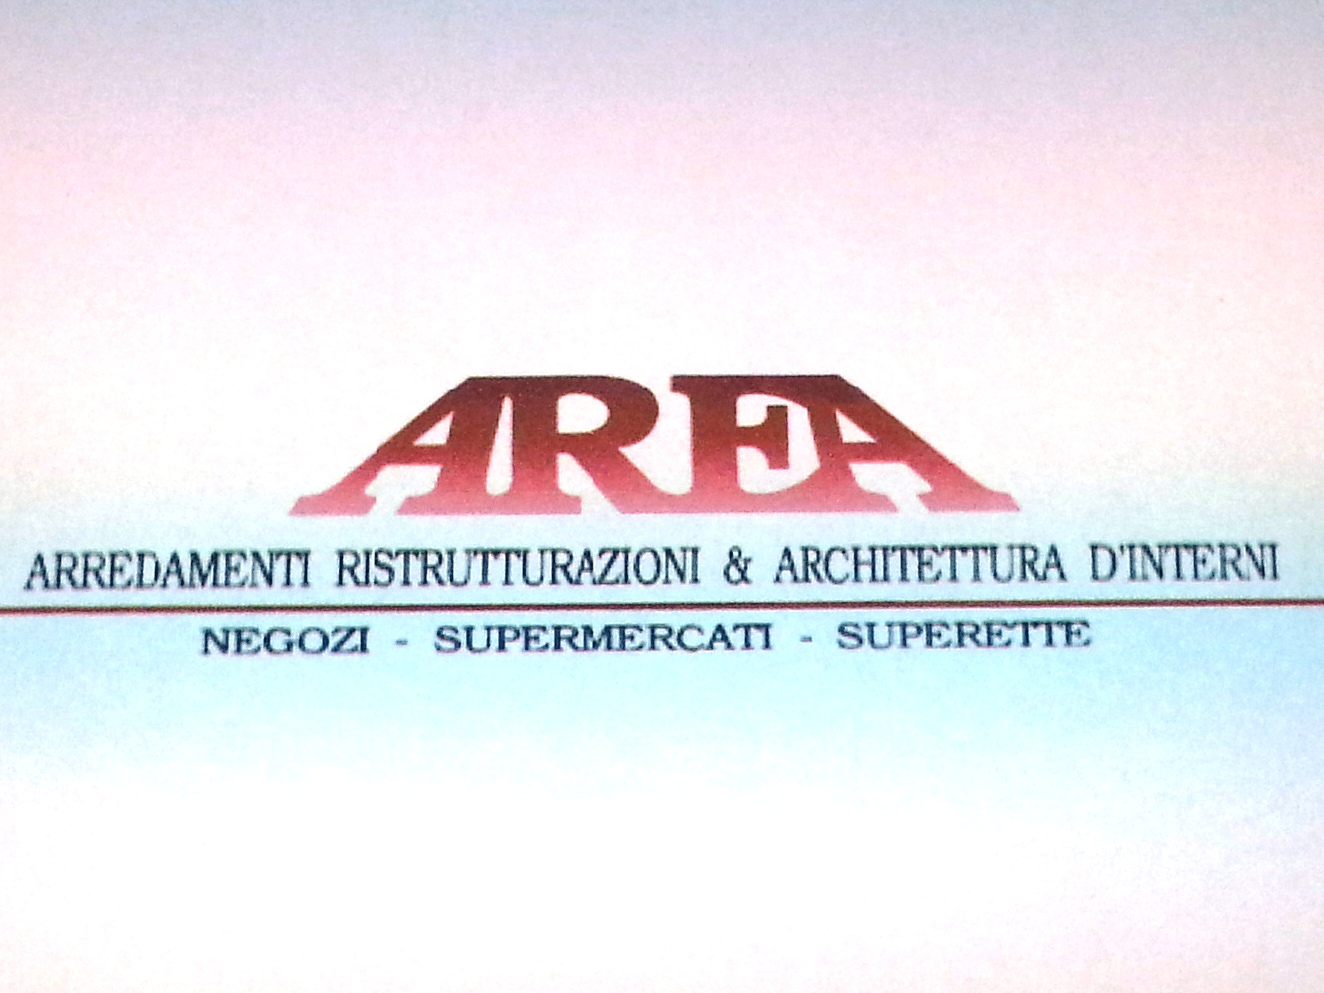 AREA S.A.S.